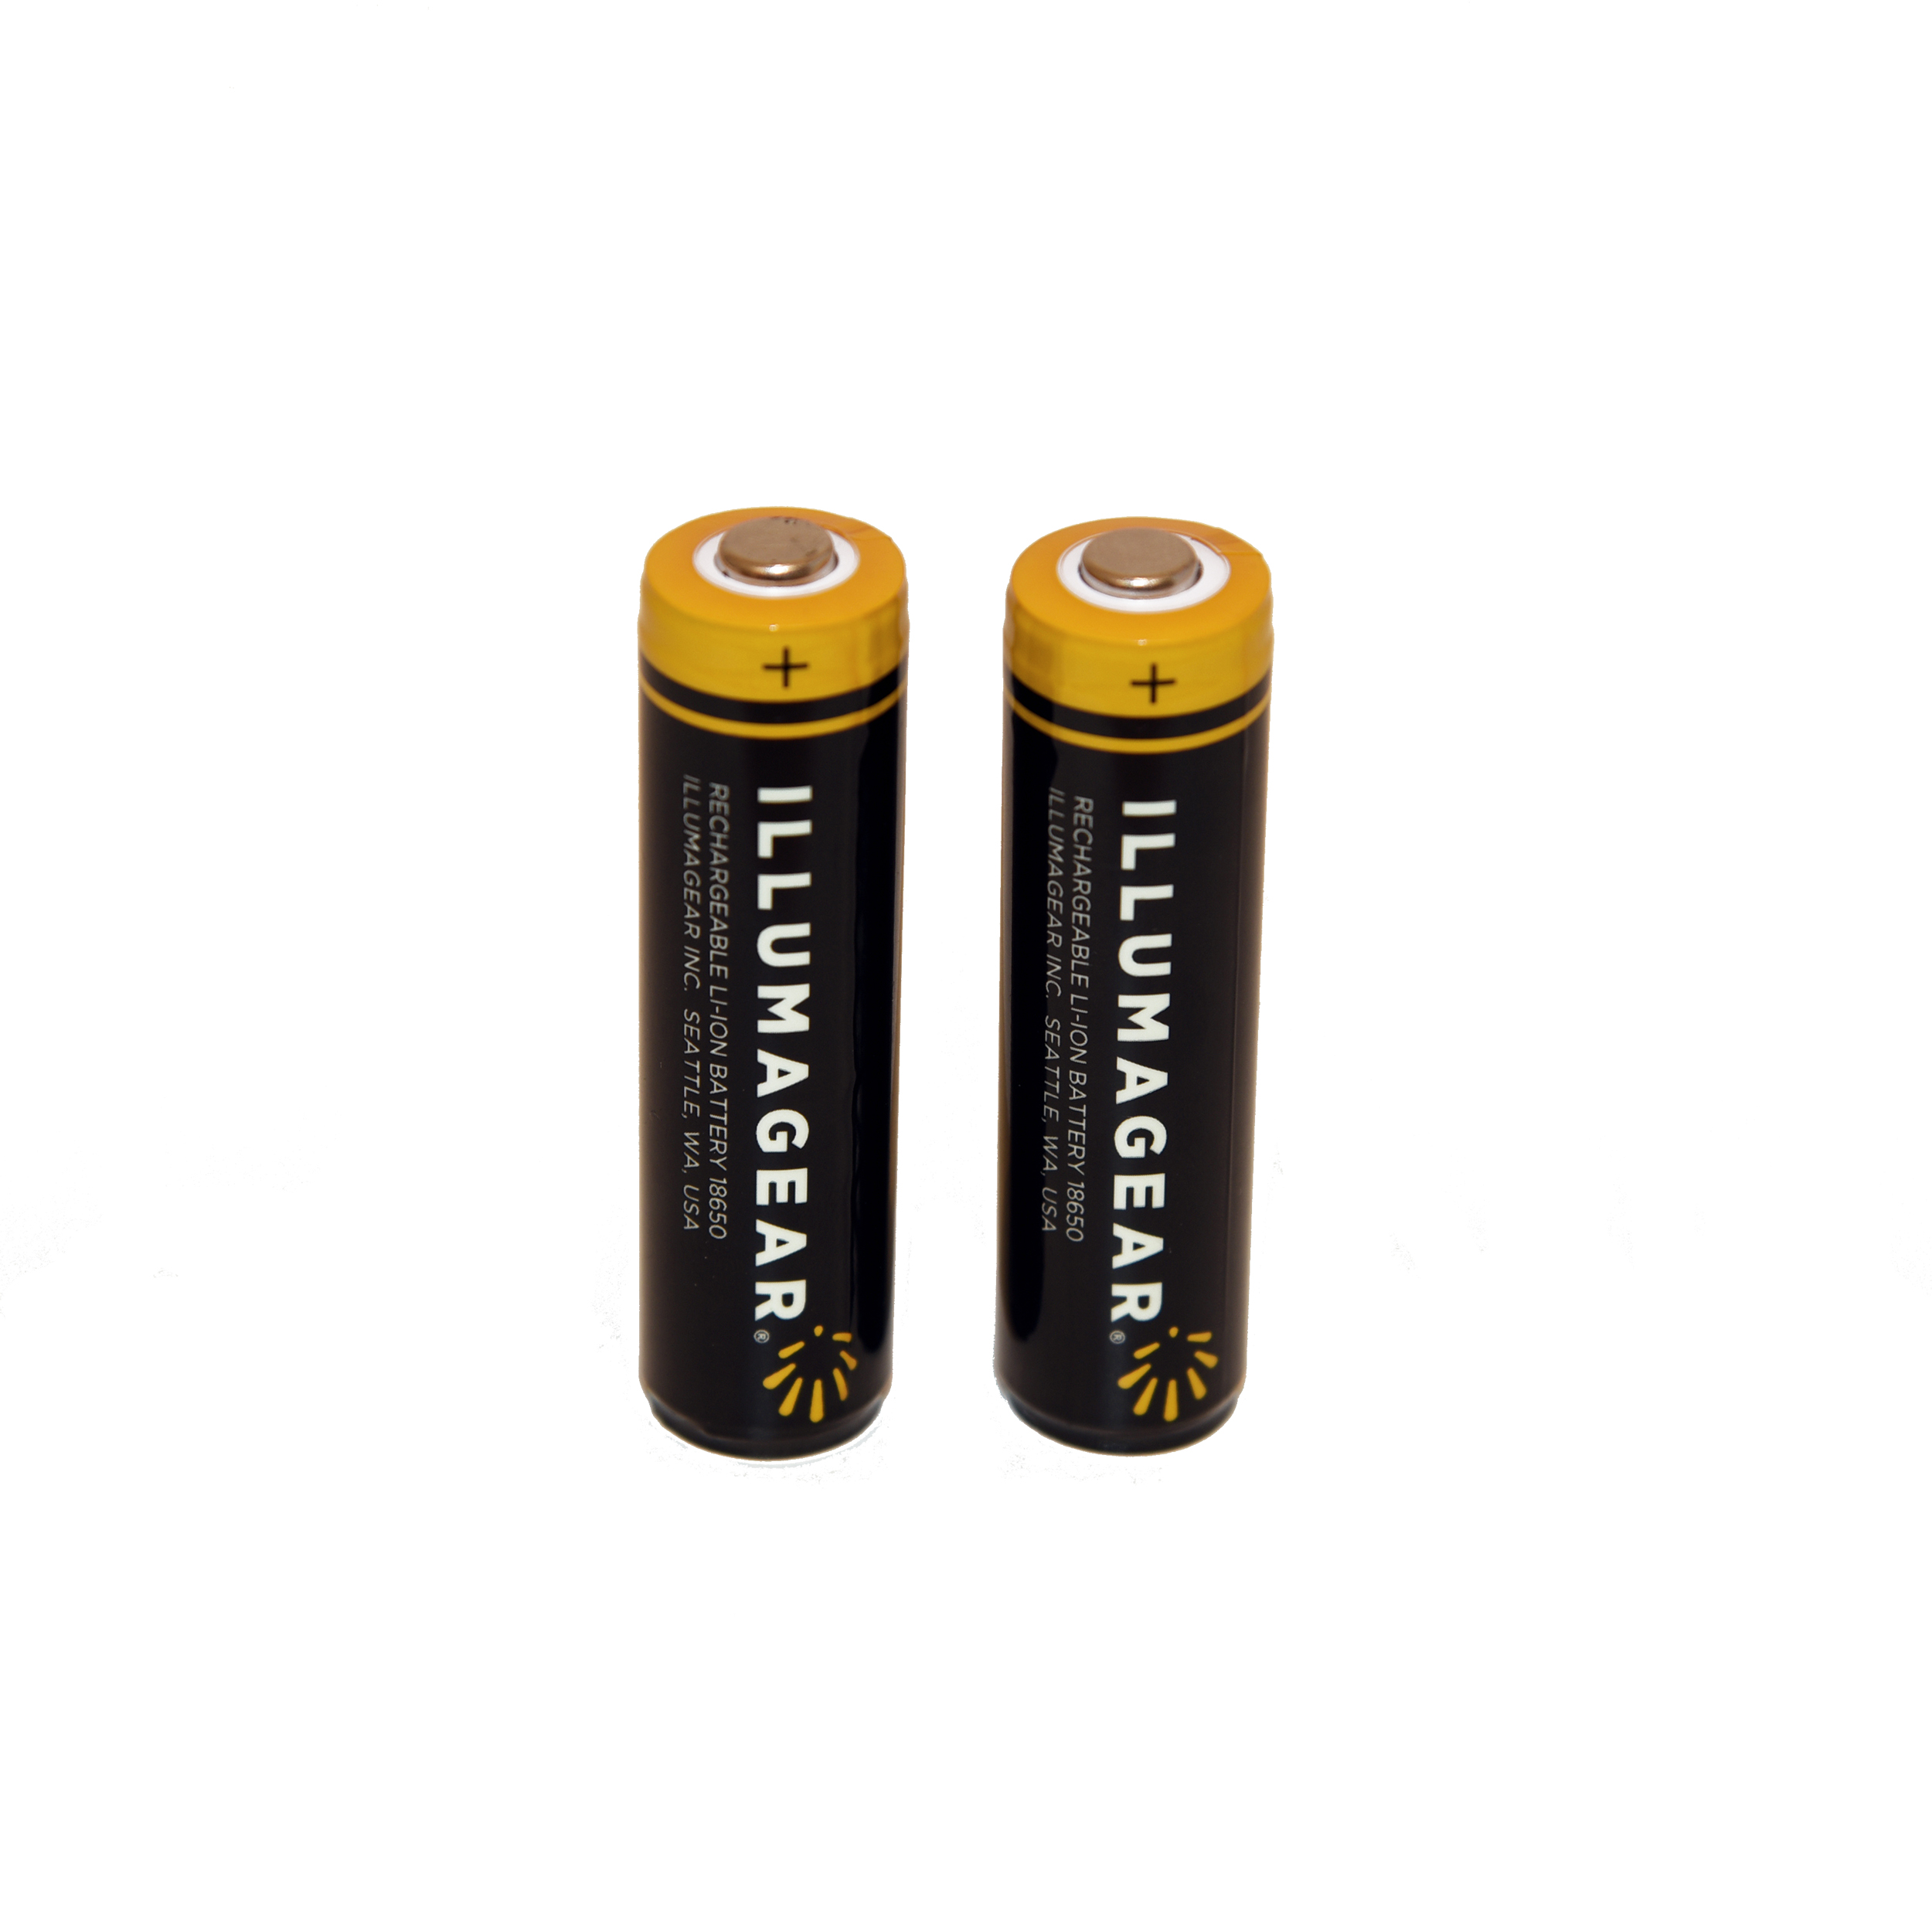 18650 Lithium Ion Rechargeable Batteries, 2-pack